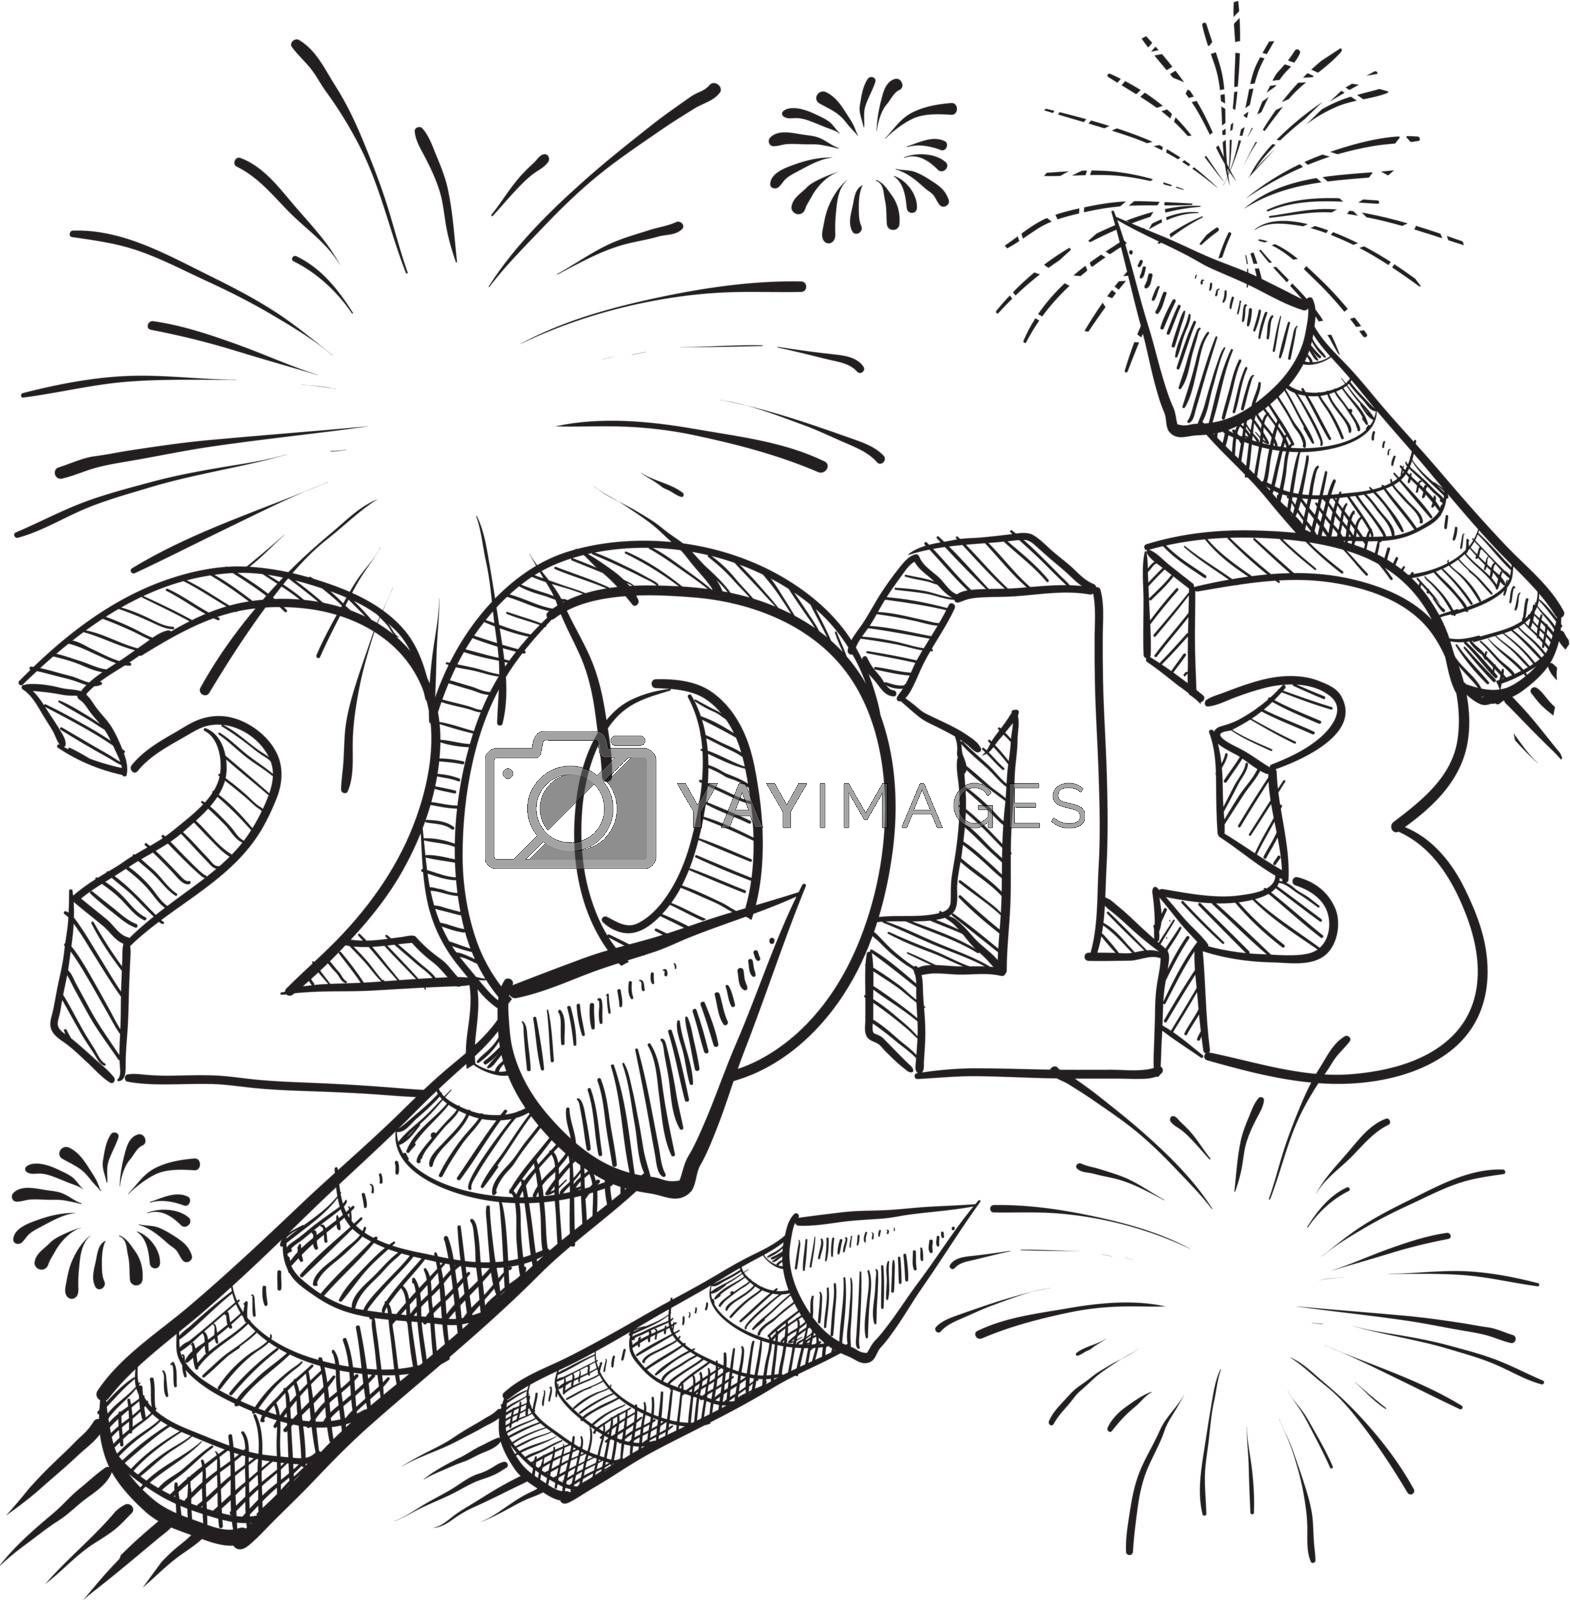 Doodle style 2013 New Year illustration in vector format with retro fireworks celebration background